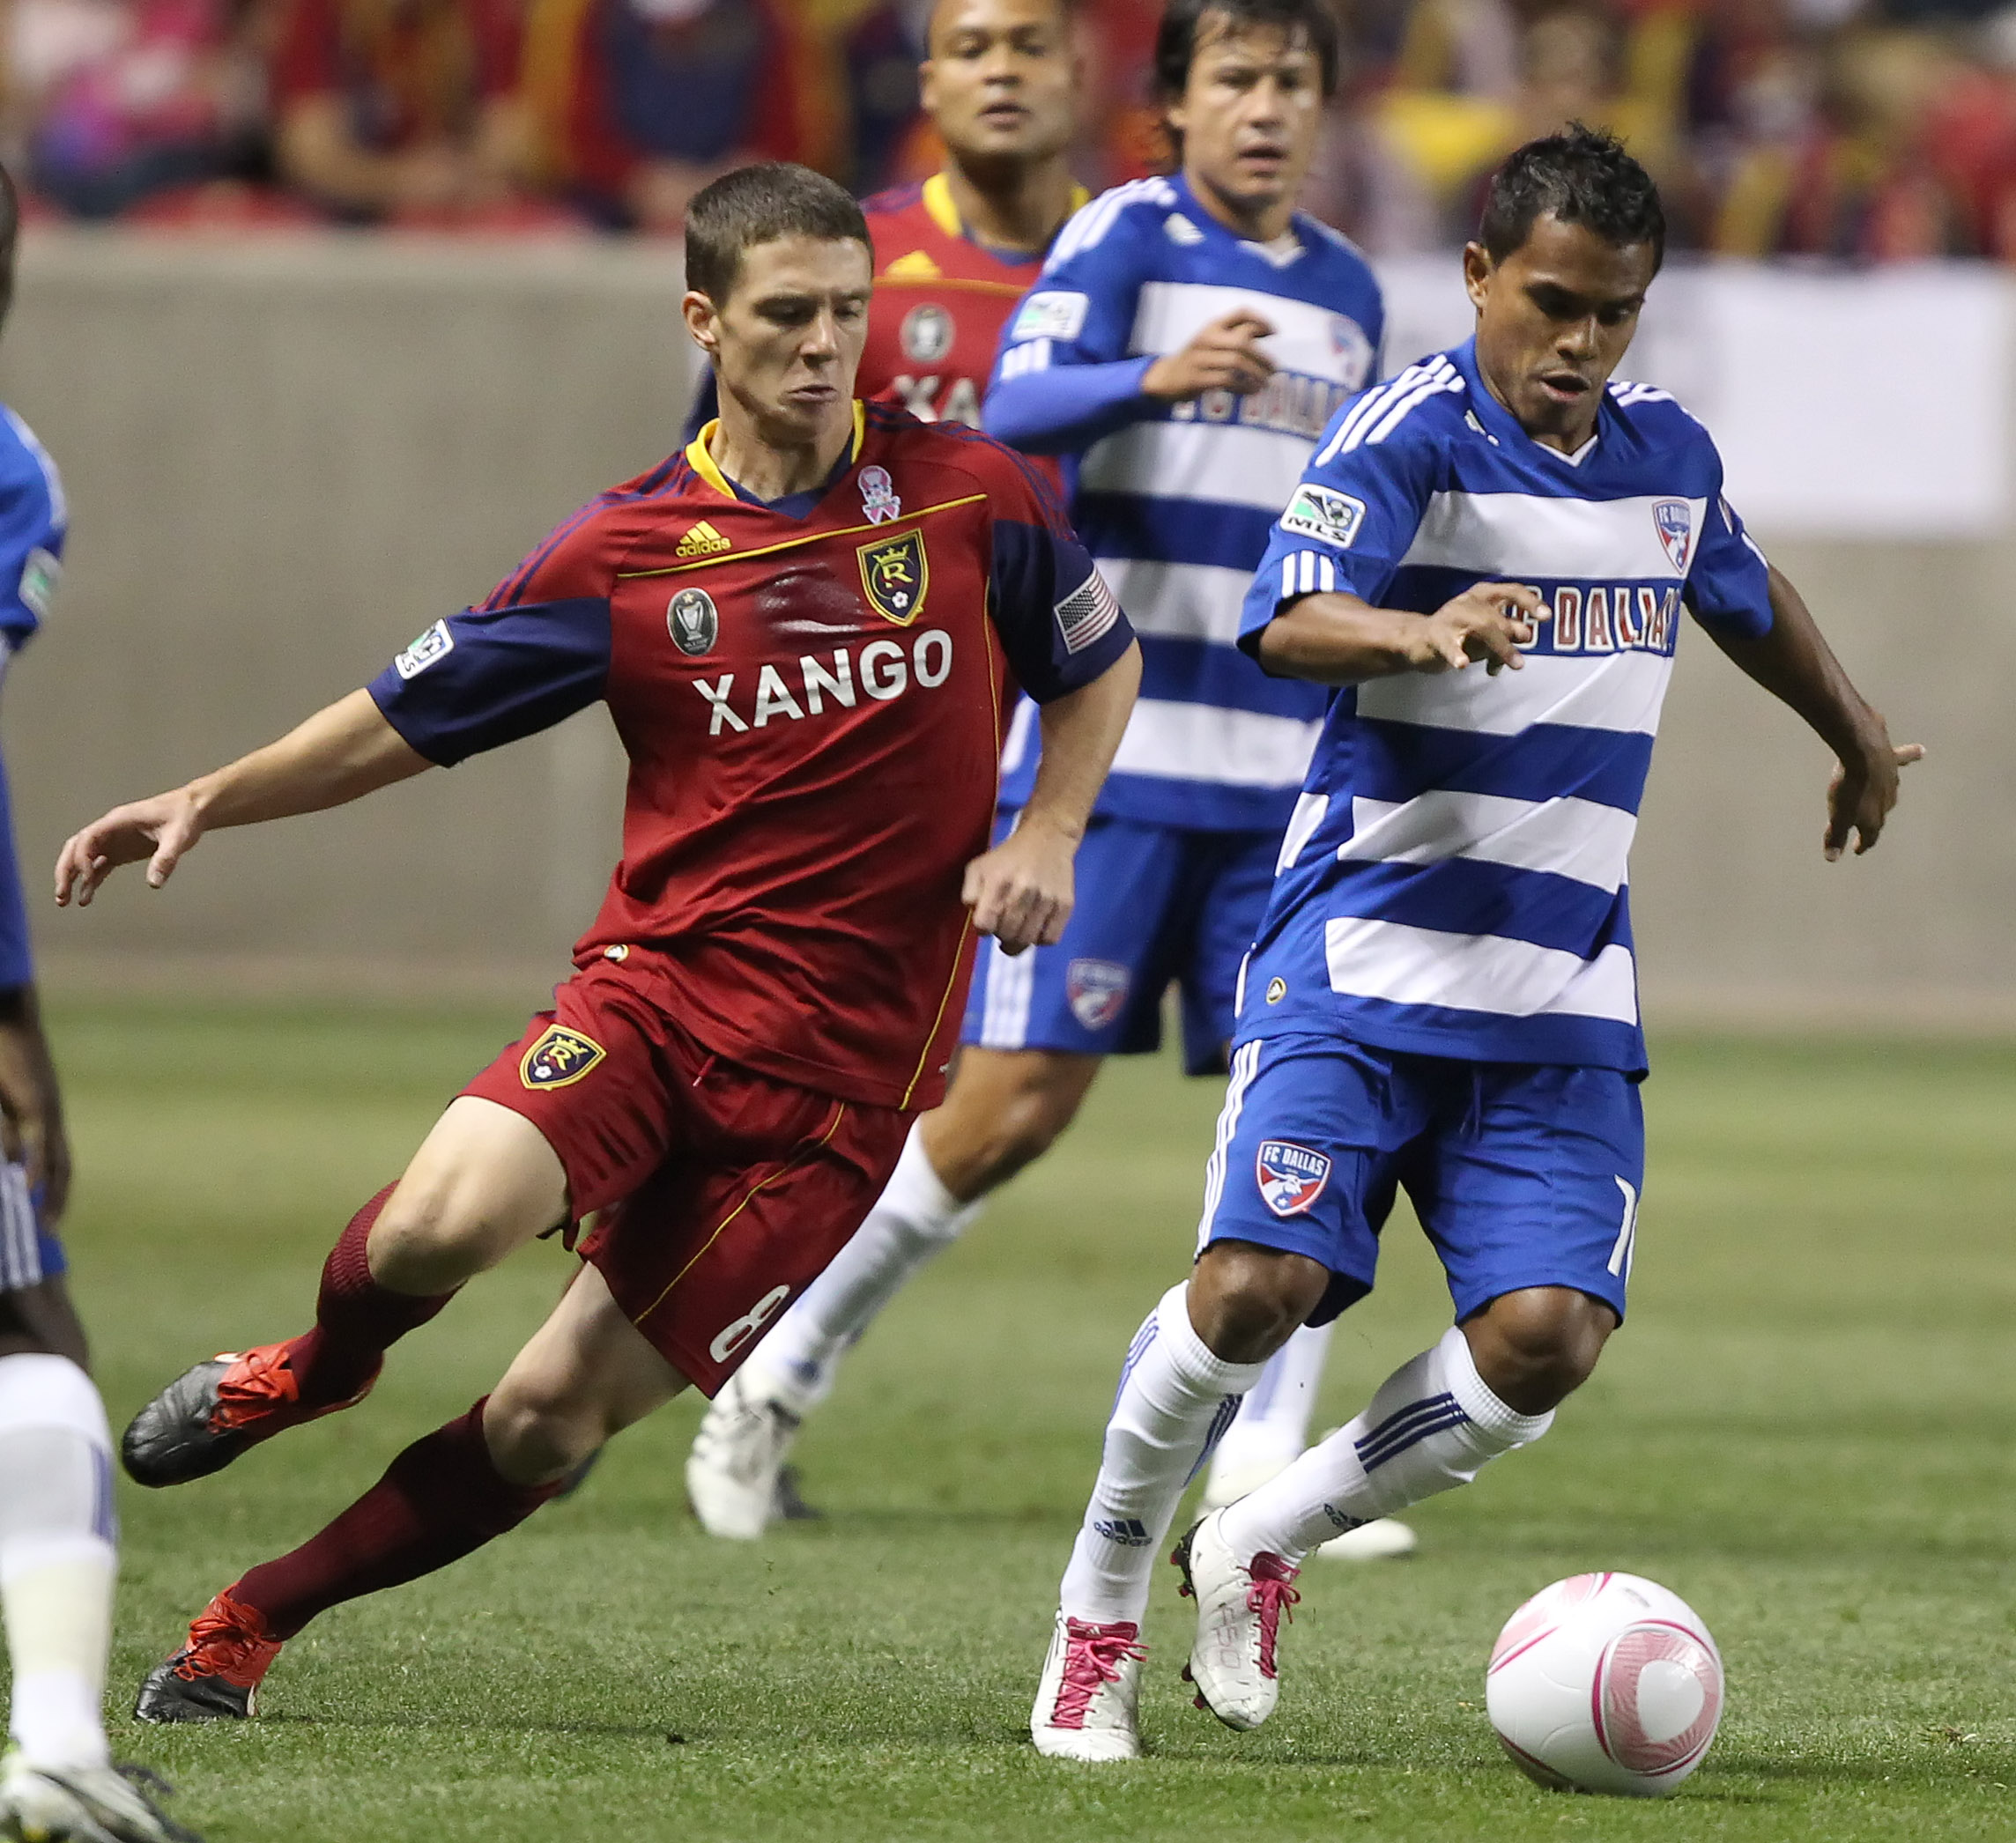 SANDY, UT - SEPTEMBER 16: Will Johnson #8 of Real Salt Lake of and David Ferreira #10 FC Dallas fight for the ball during the first half of an MLS soccer game September 16, 2010 at Rio Tinto Stadium in Sandy, Utah. (Photo by George Frey/Getty Images)